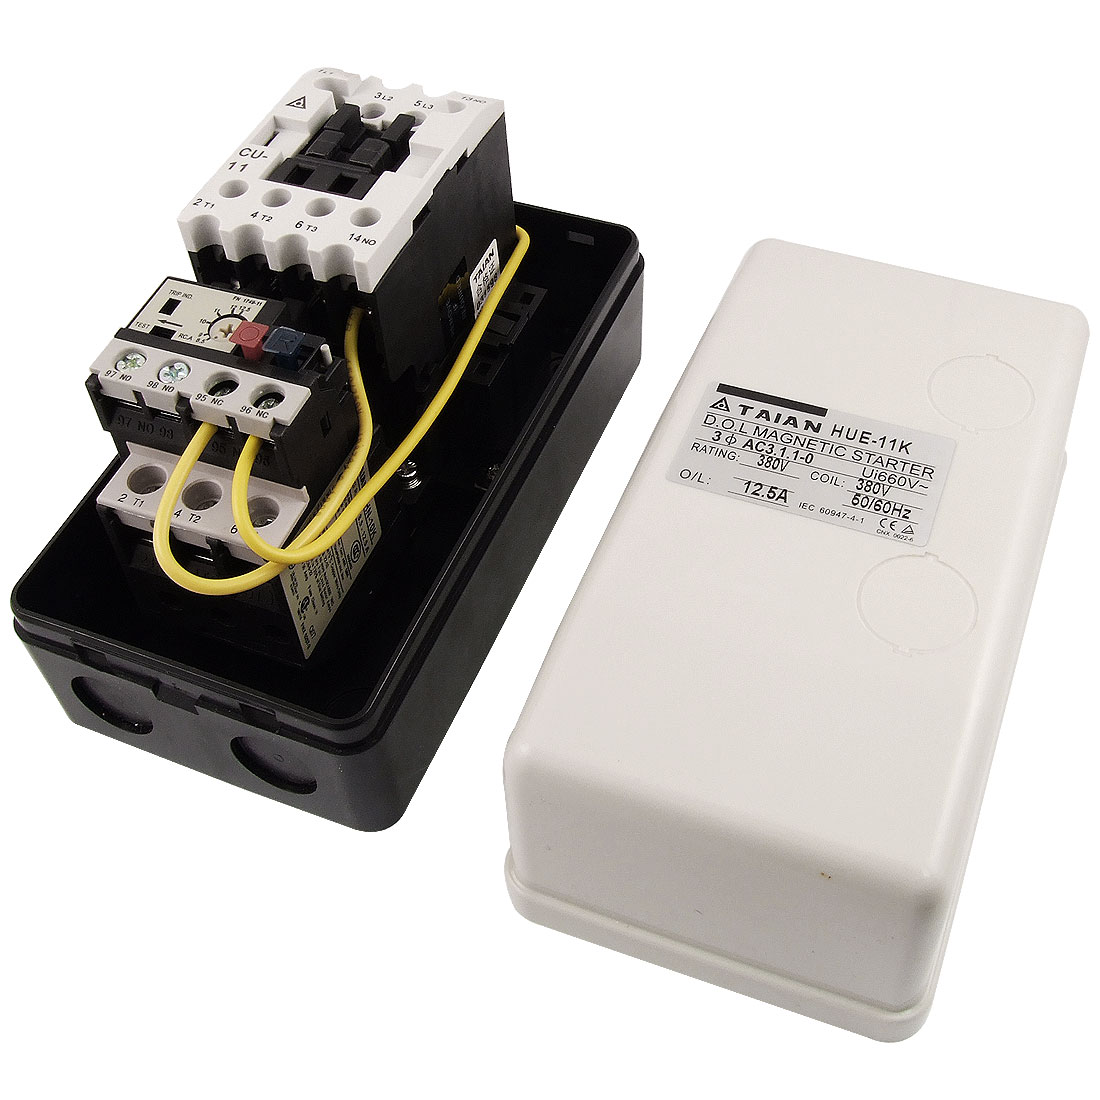 380V AC Coil Three Phase Magnetic Starter Motor Control 8.5-12.5A 3Pole